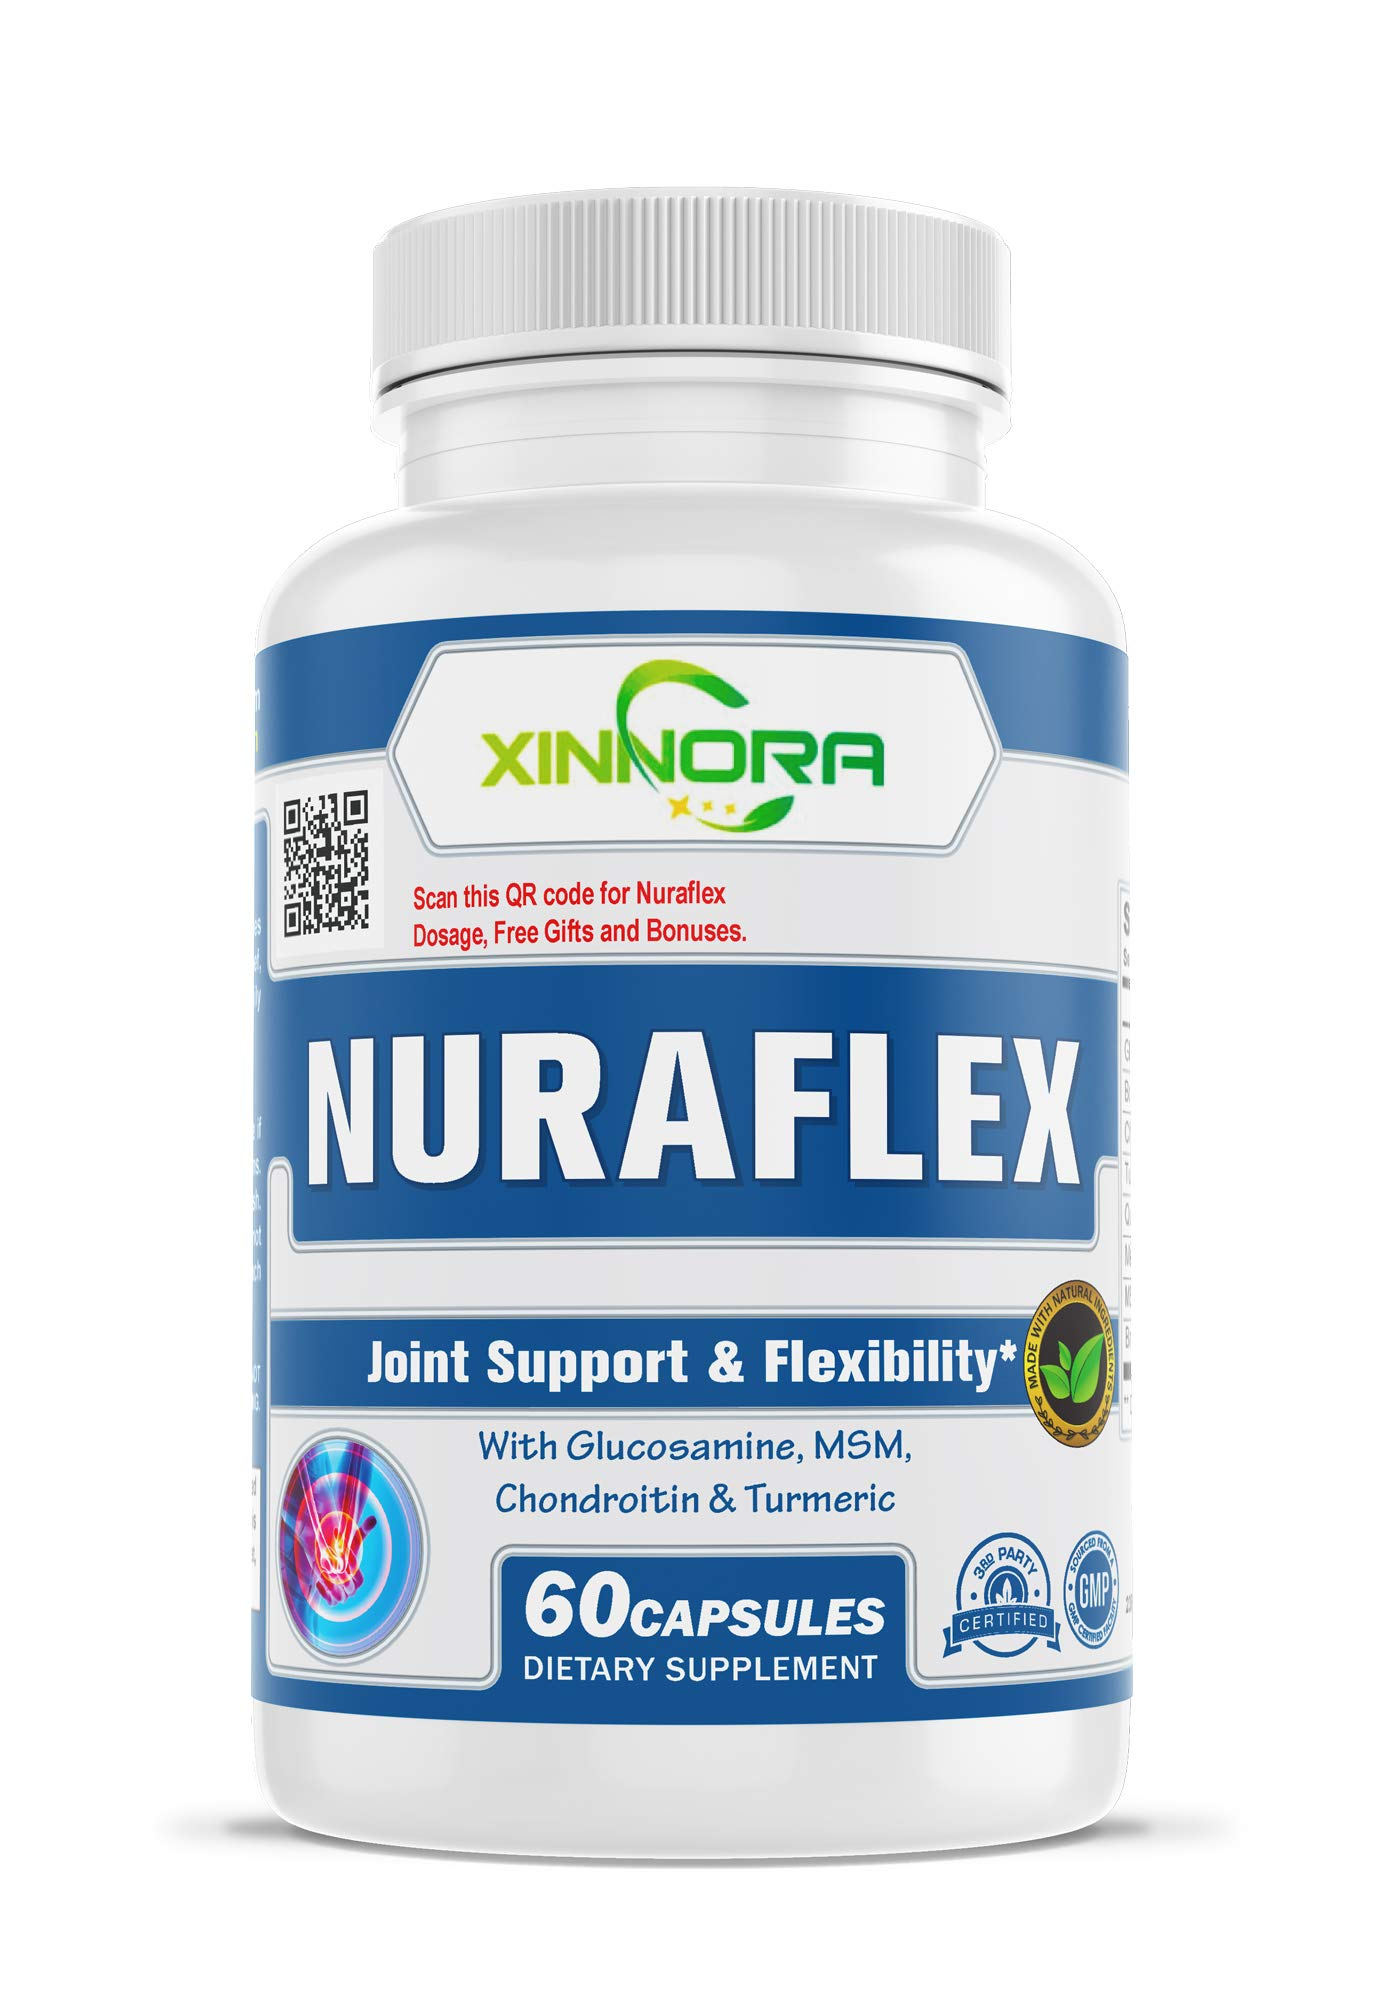 XINNORA Nuraflex - Glucosamine with Chondroitin Turmeric MSM Boswellia - Joint Support & Flexibility Supplement - Anti-Inflammatory & Antioxidant Pills for Your Back, Knees, Hands 60 Caps x 10 BTLs by Xinnora (Image #2)